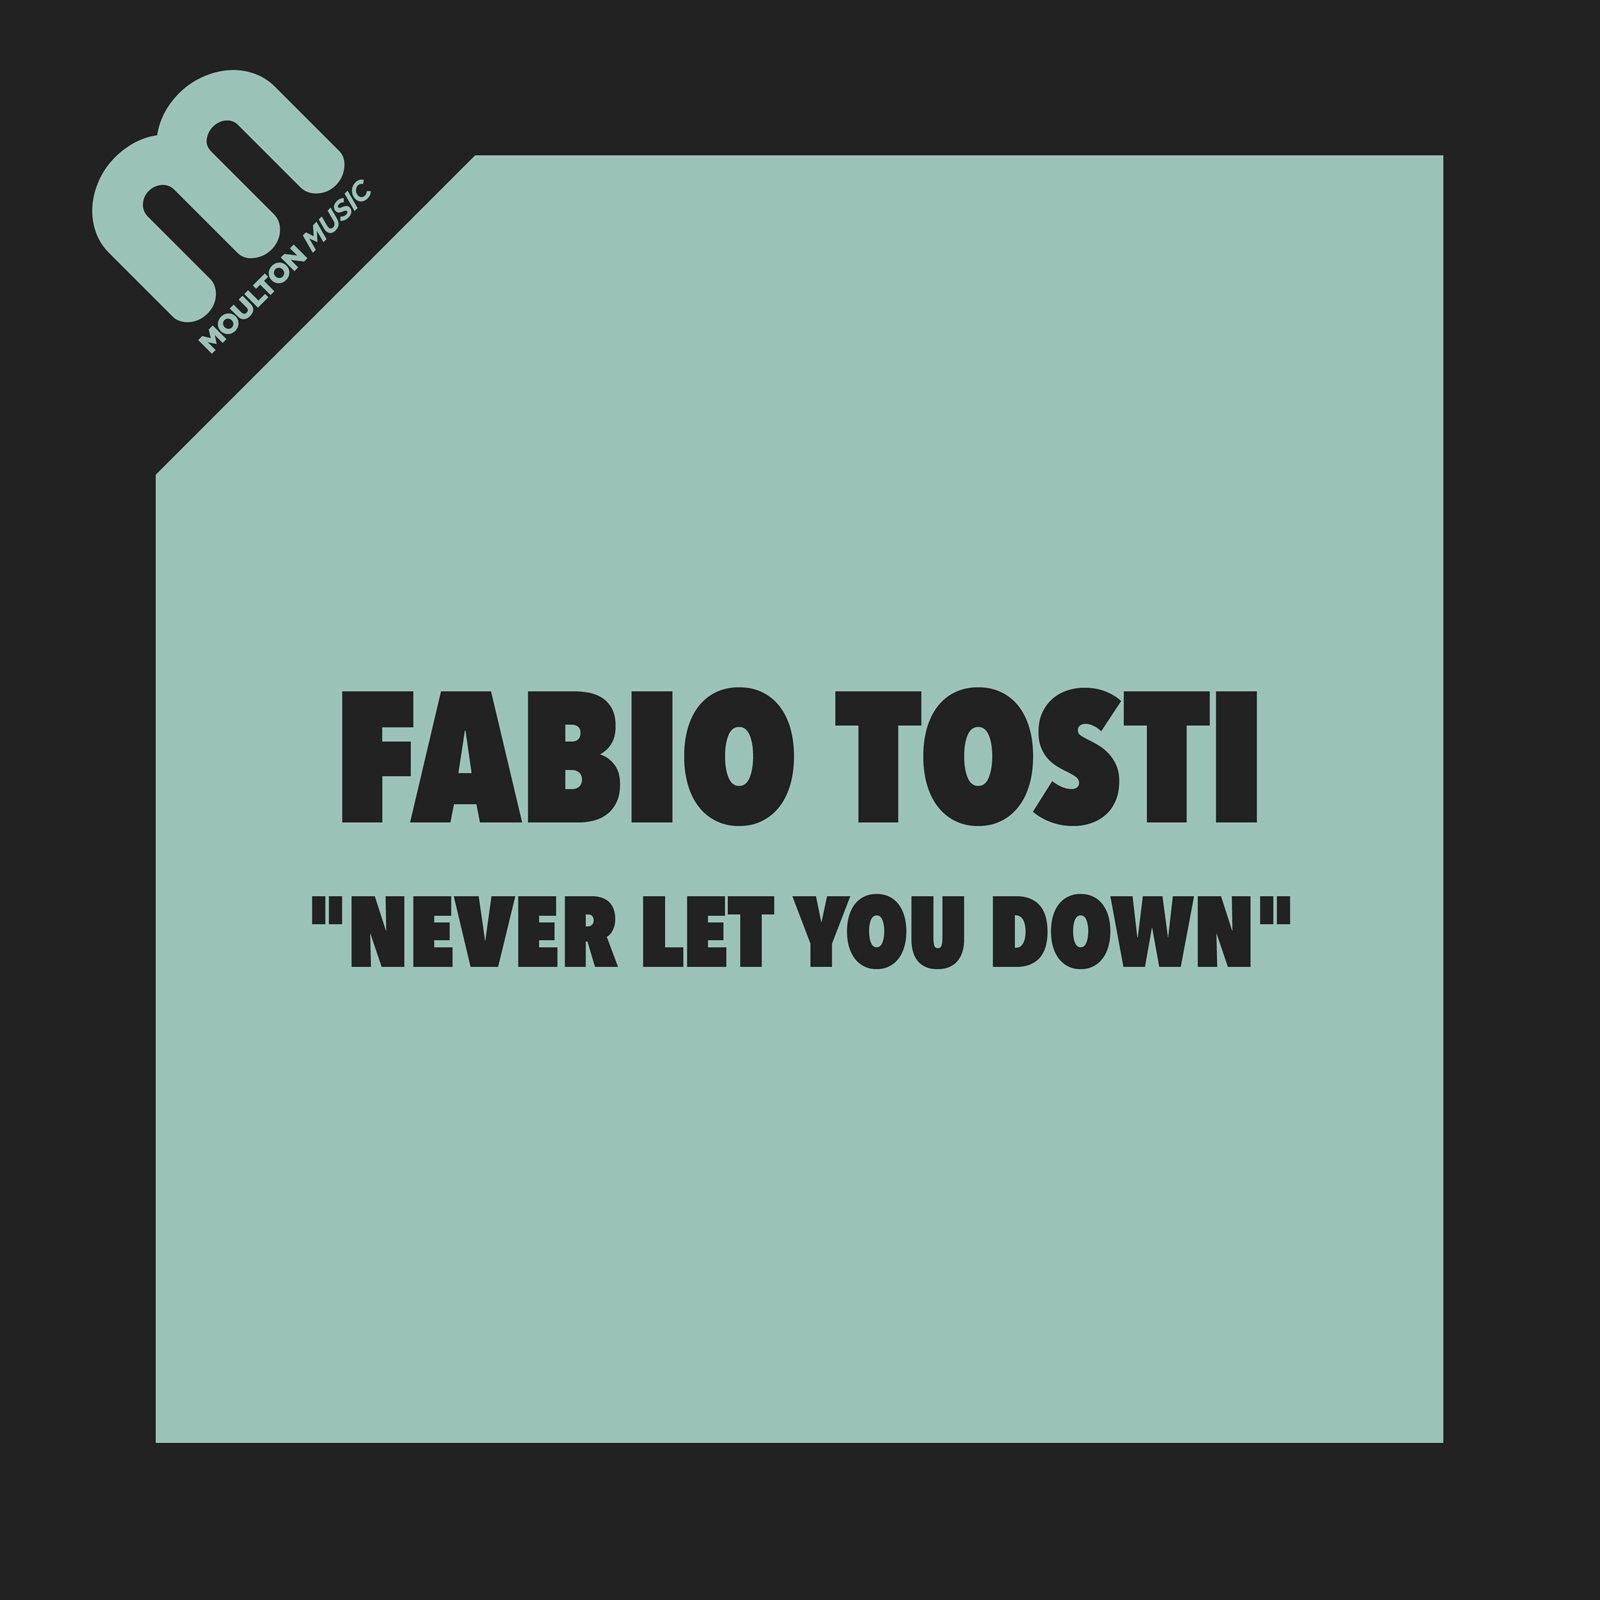 fabio-tosti-never-let-you-down